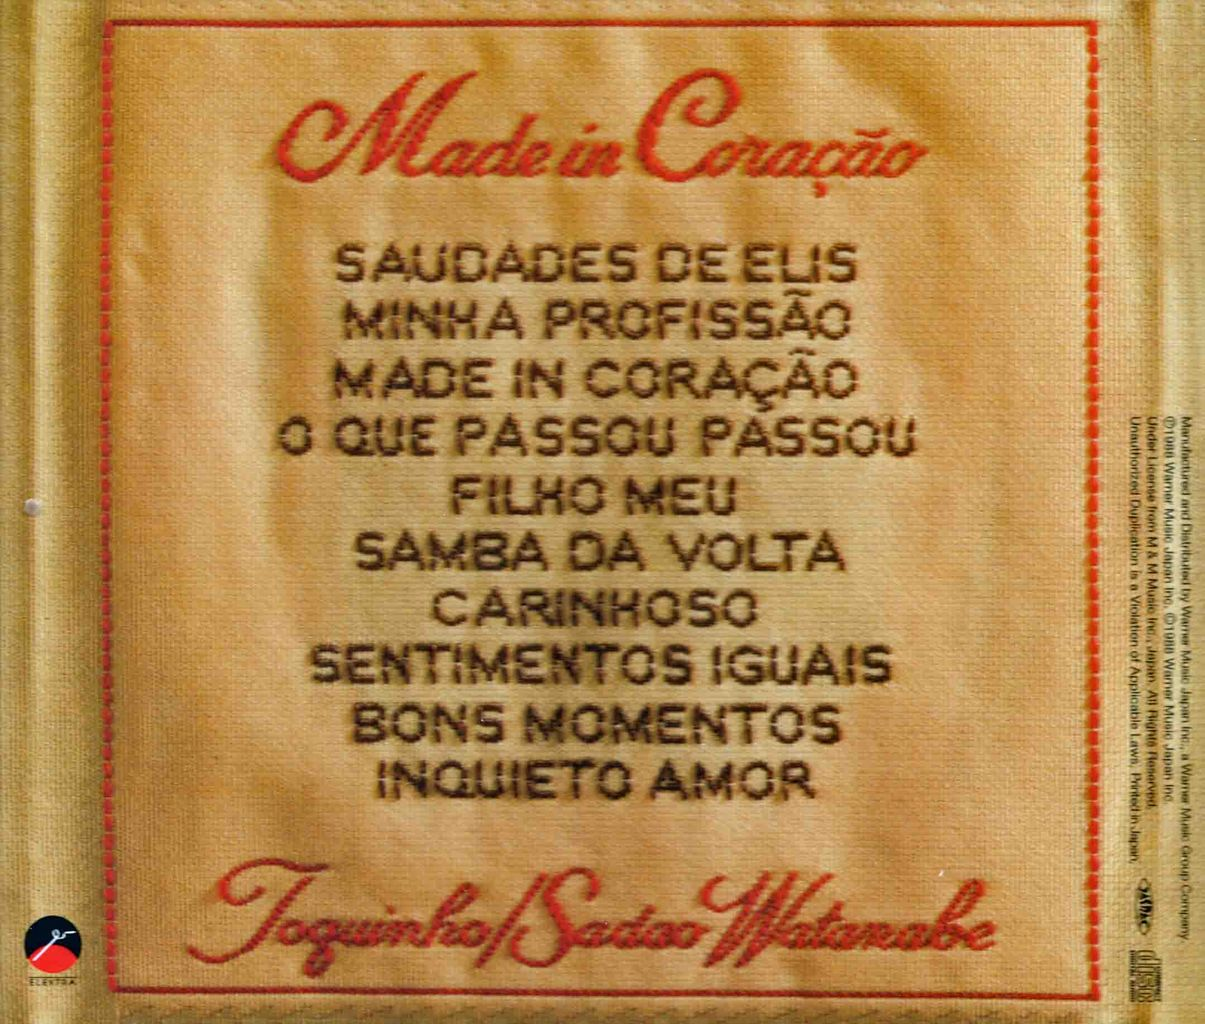 MADE IN CORACAO-2